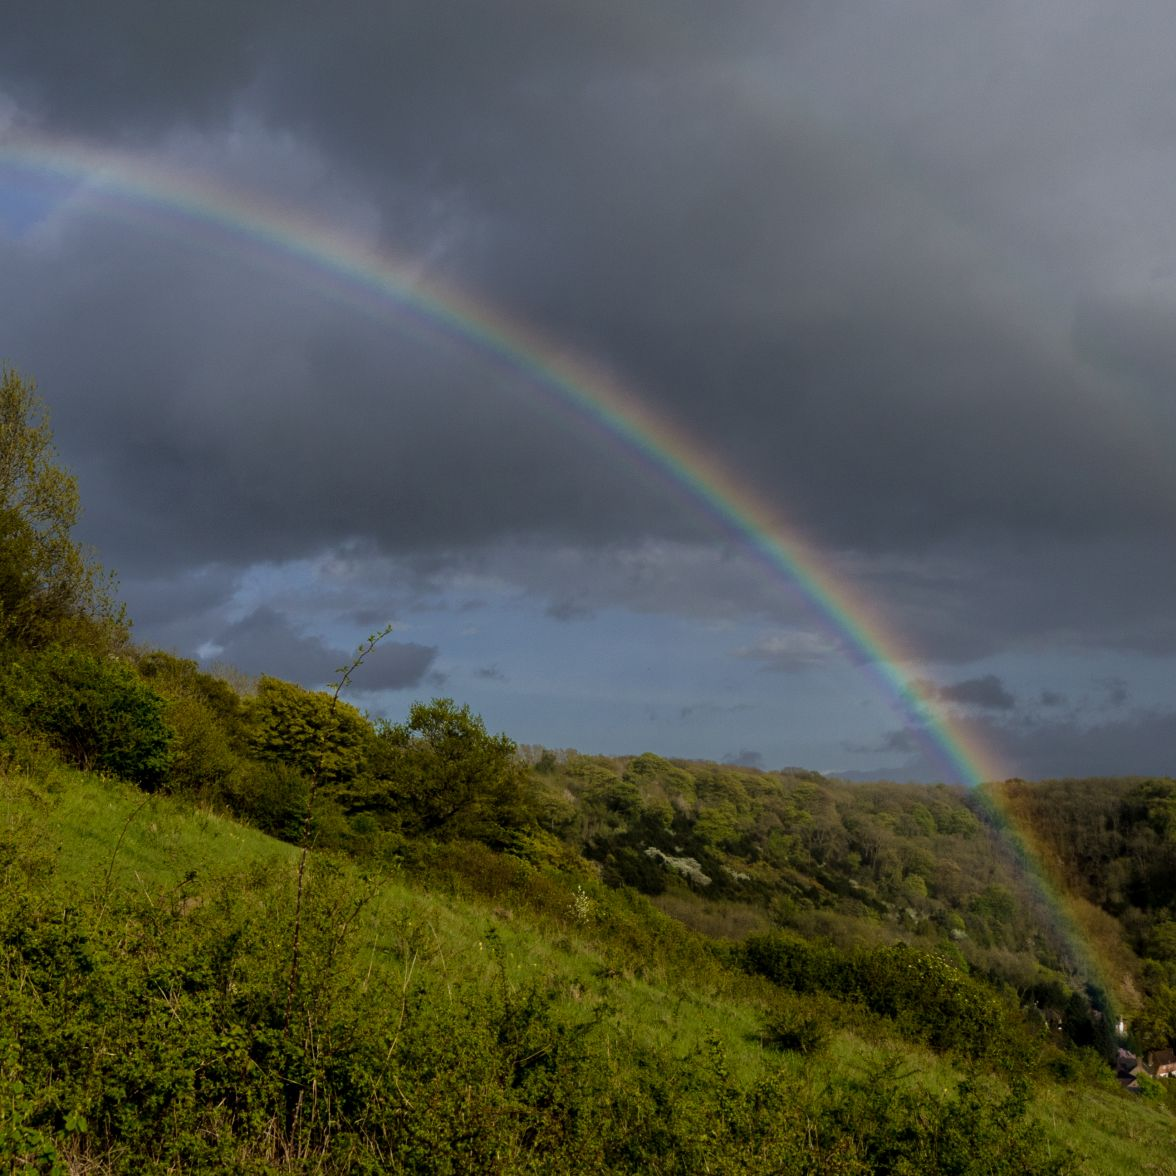 and afterwards a rainbow